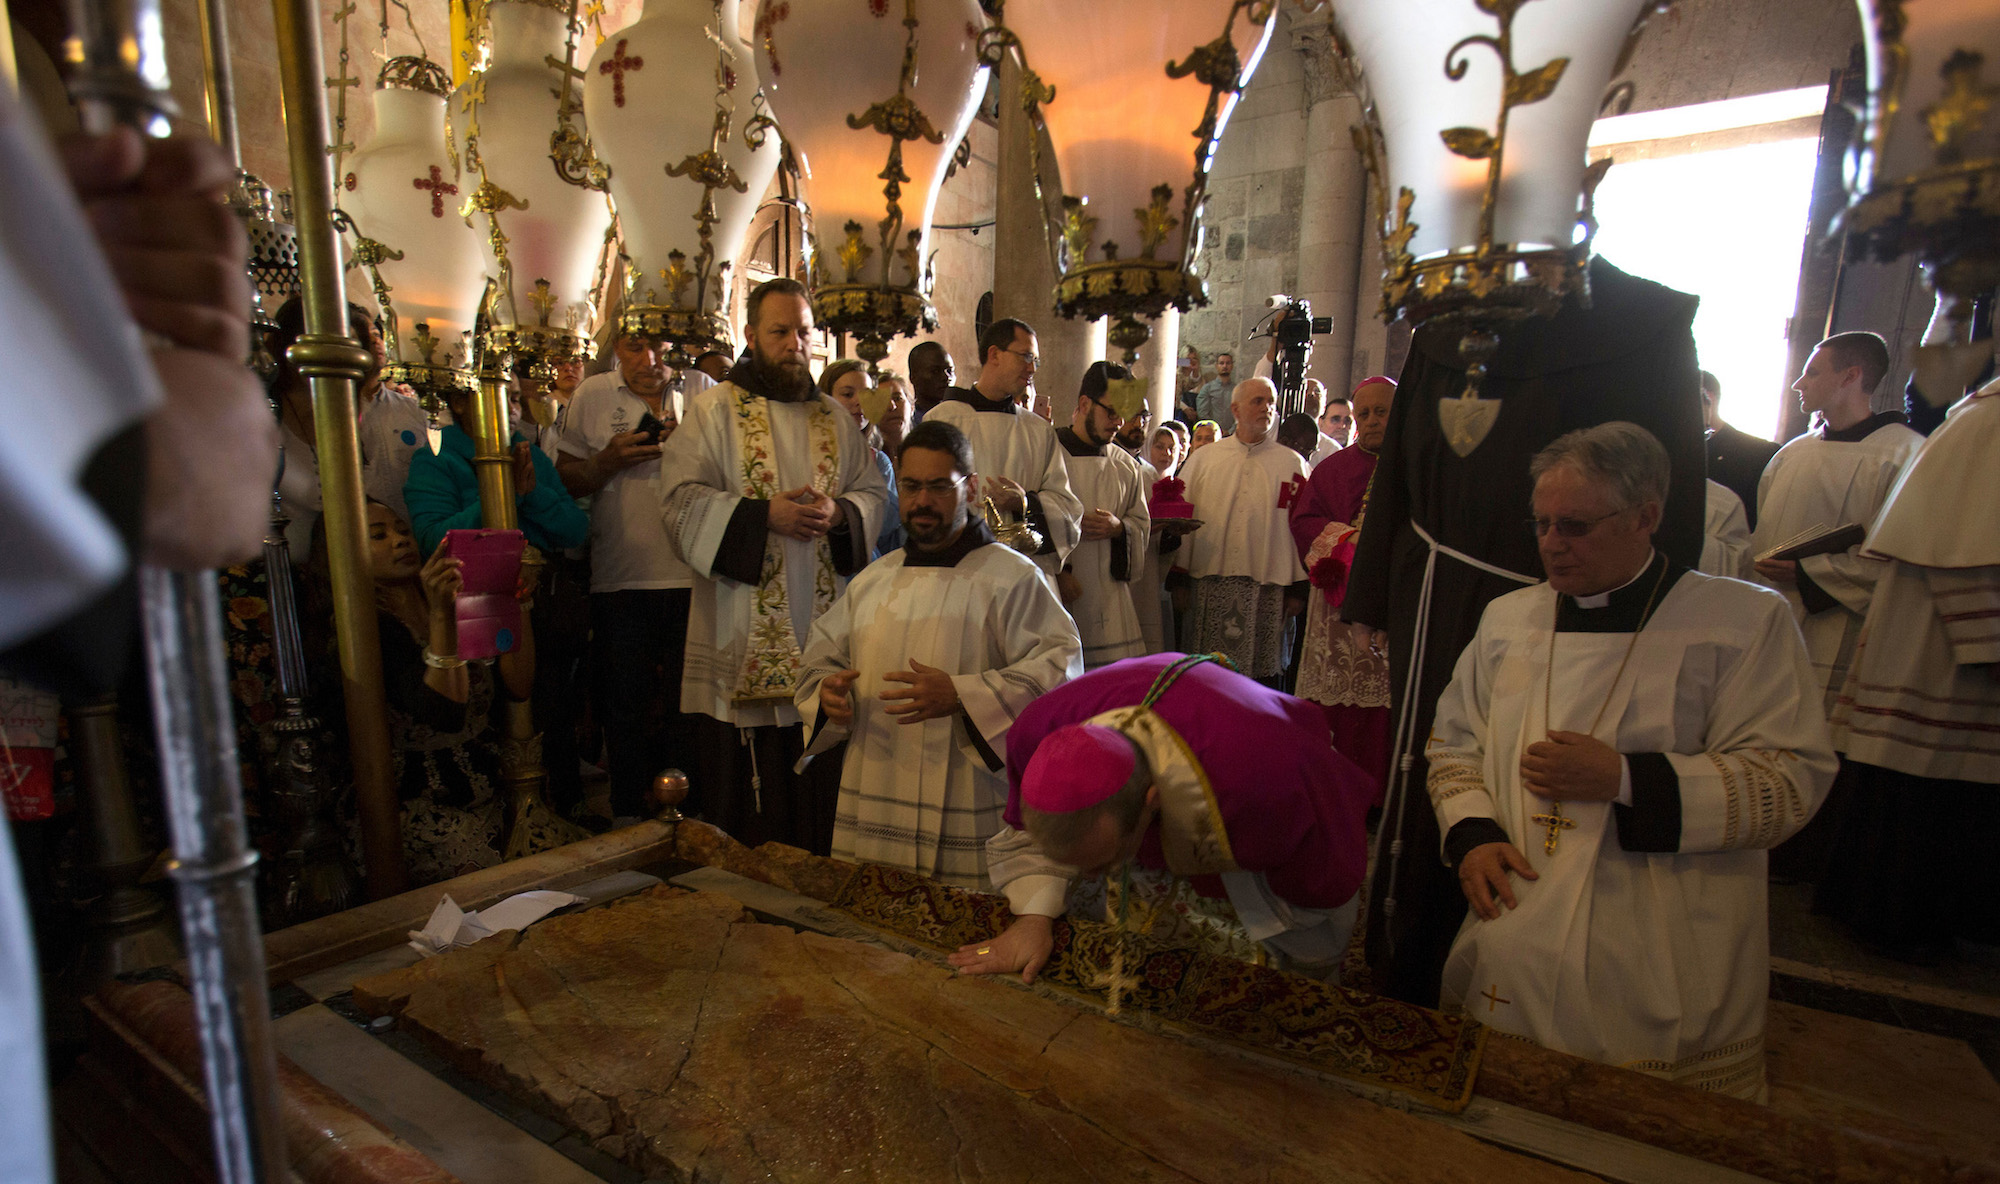 Latin Patriarch of Jerusalem, Pierbattista Pizzaballa (wearing pink), and other clergymen stand by the Stone of Unction during the Easter Sunday procession at the Church of the Holy Sepulchre, which is believed to be the site of the crucifixion and burial of Jesus Christ. Thousands of Christians from around the world flocked to Jerusalem to commemorate the day when, according to Christian tradition, Jesus resurrected. Jerusalem, April 16, 2017 (Photo by Heidi Levine/GroundTruth).